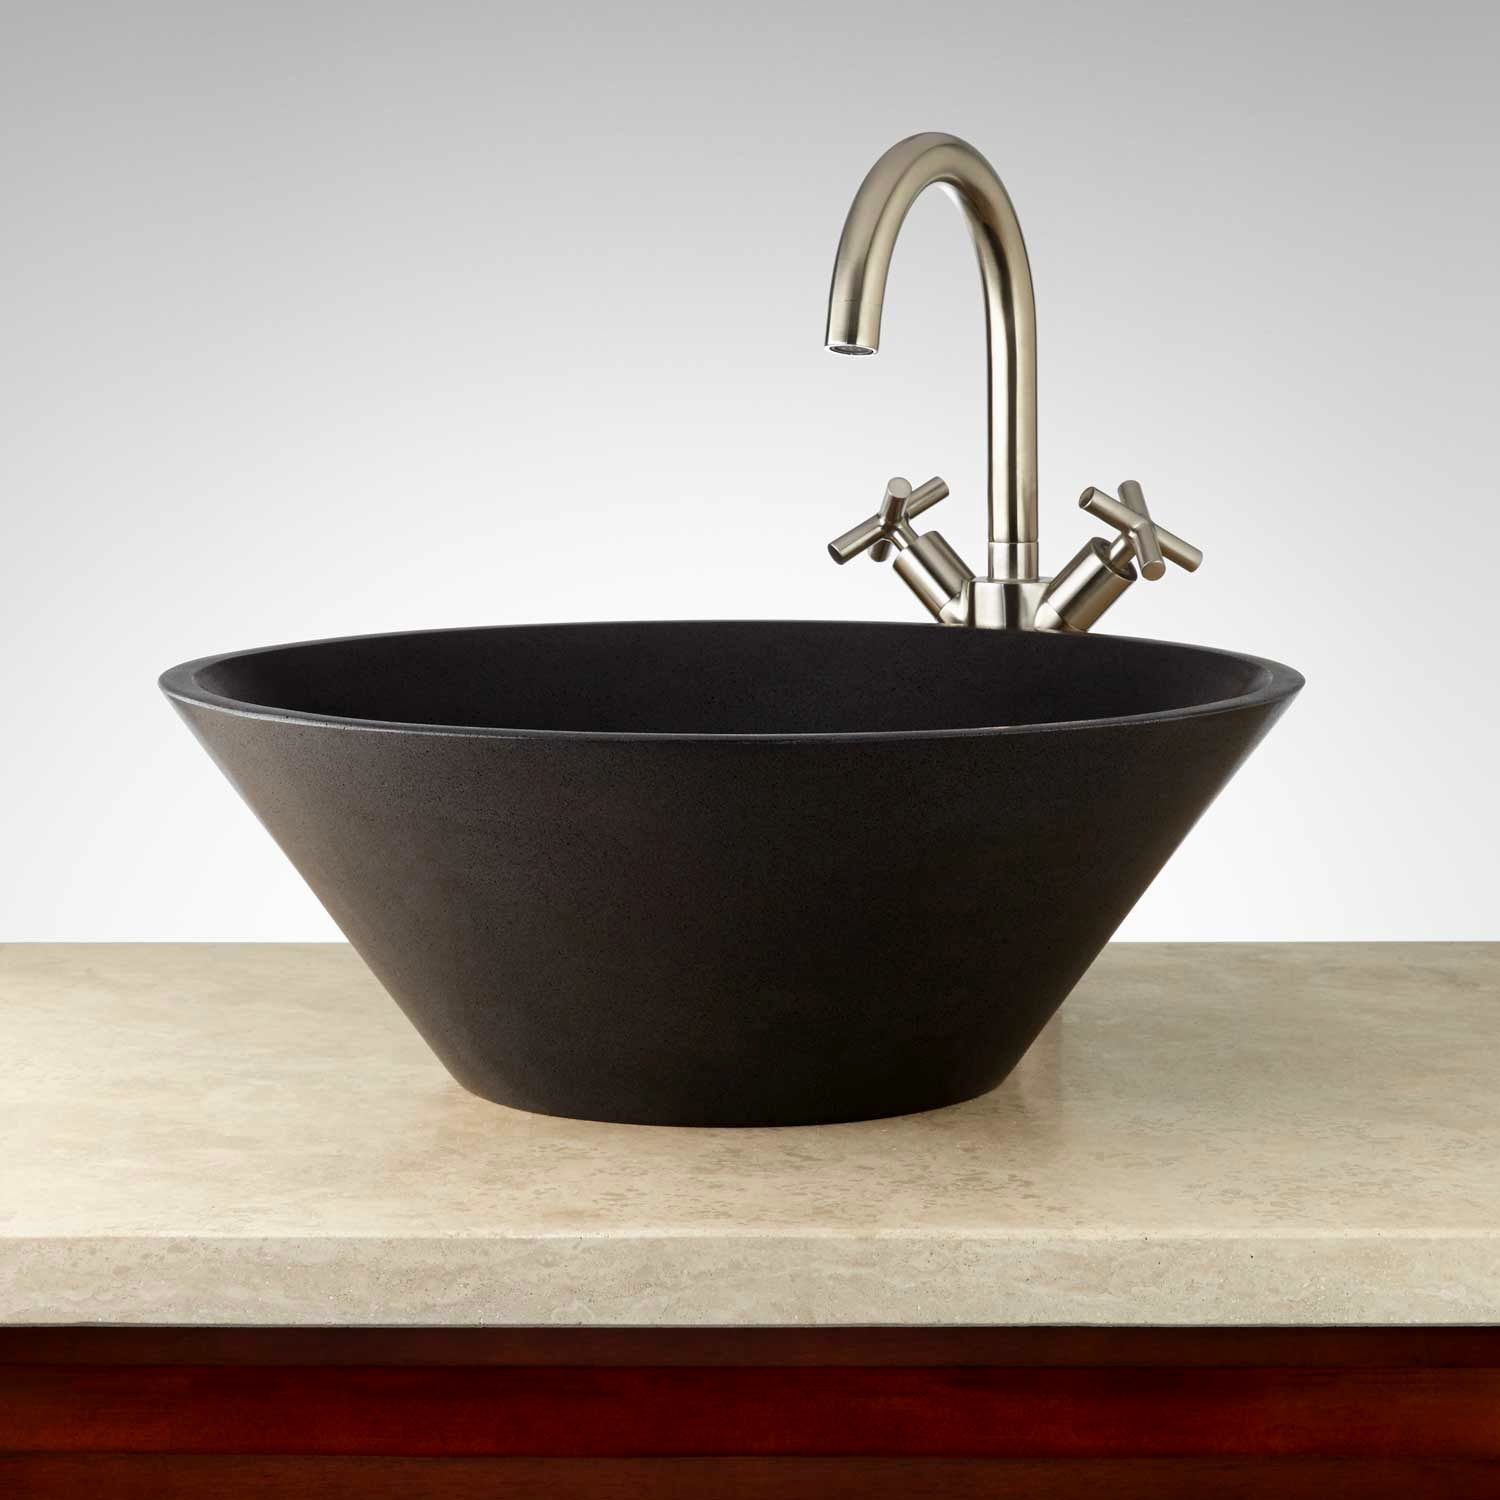 top copper bathroom sinks collection-Fresh Copper Bathroom Sinks Wallpaper